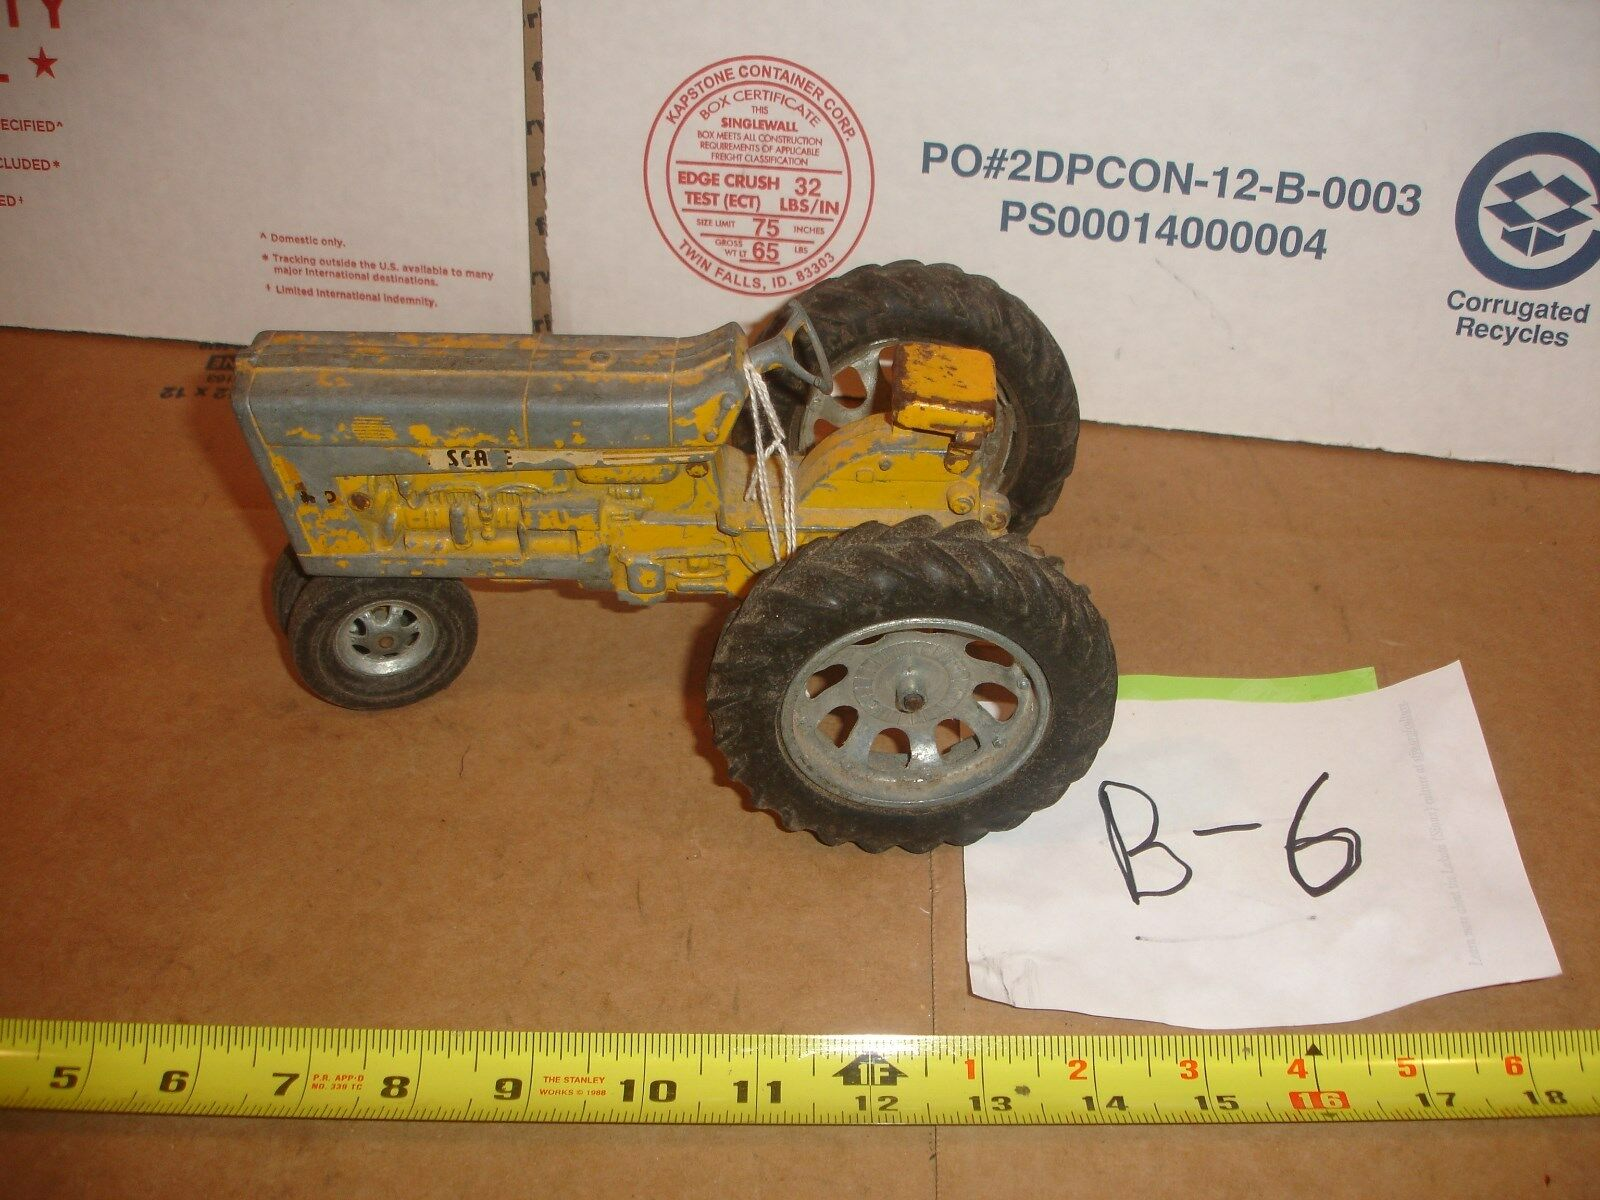 1 16 Tru Scale toy tractor tractor tractor 2b5e91